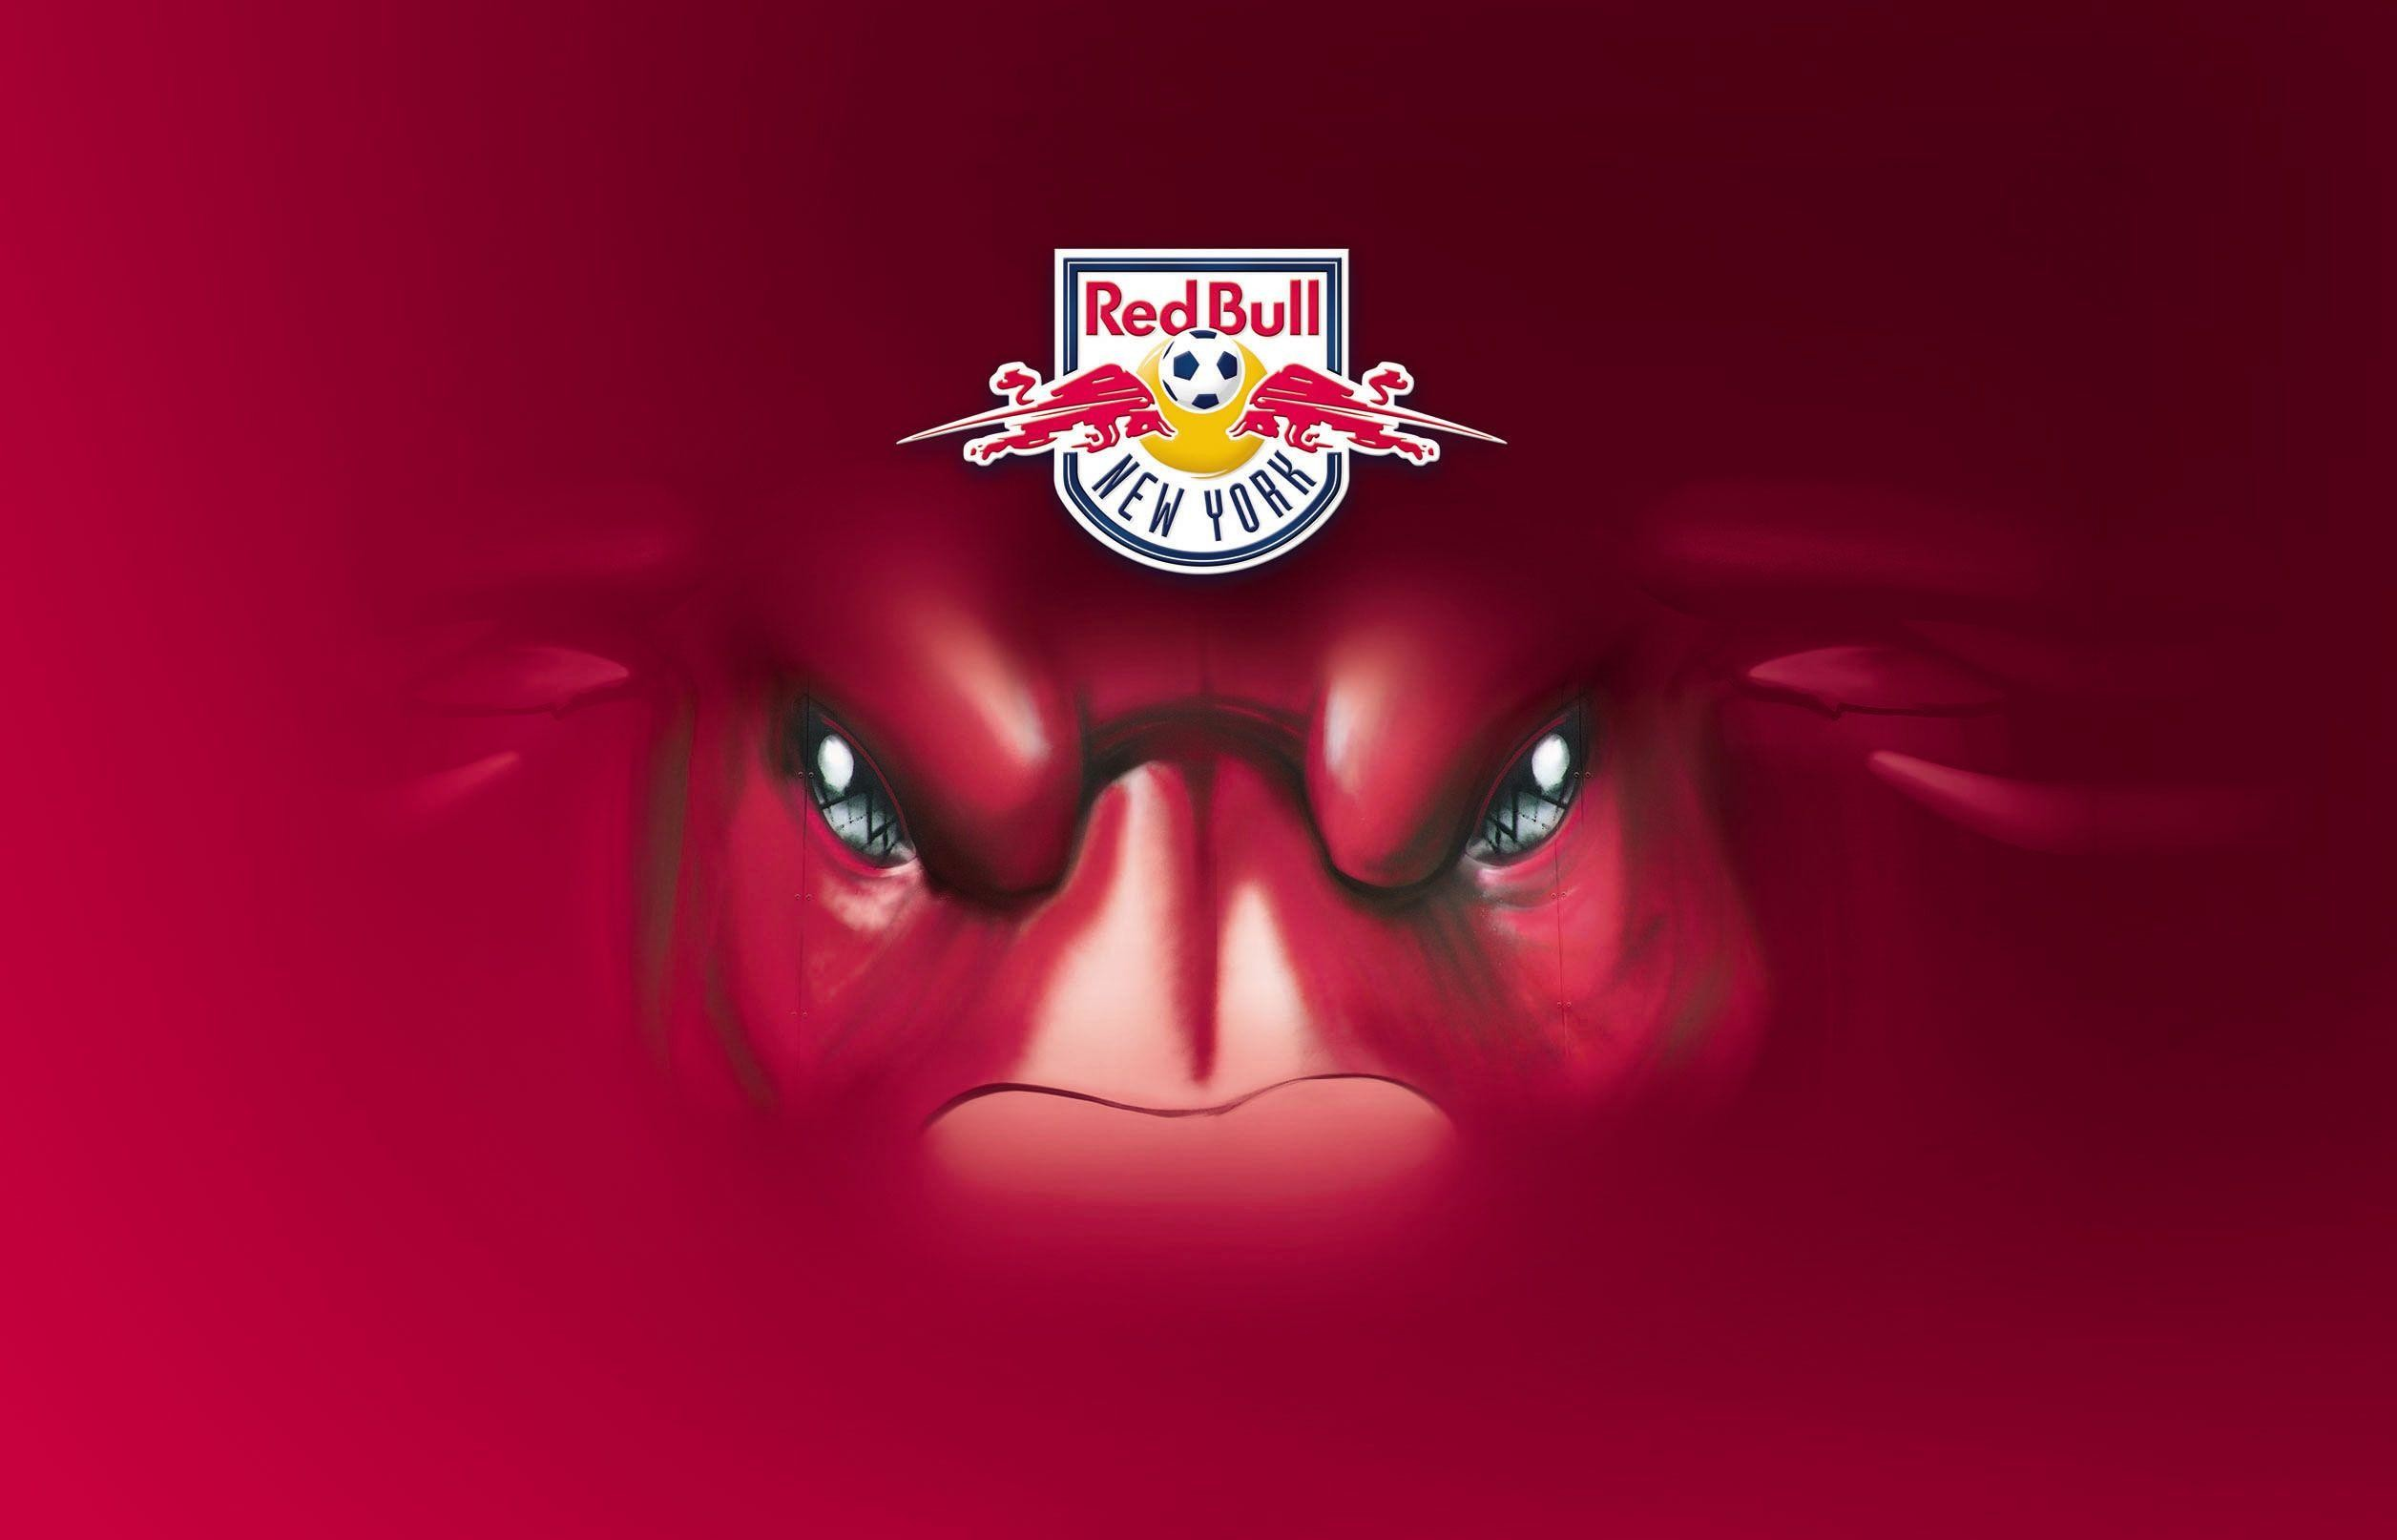 Red Bull New York Flag Logo Wallpaper Rb Leipzig 2512x1614 Download Hd Wallpaper Wallpapertip